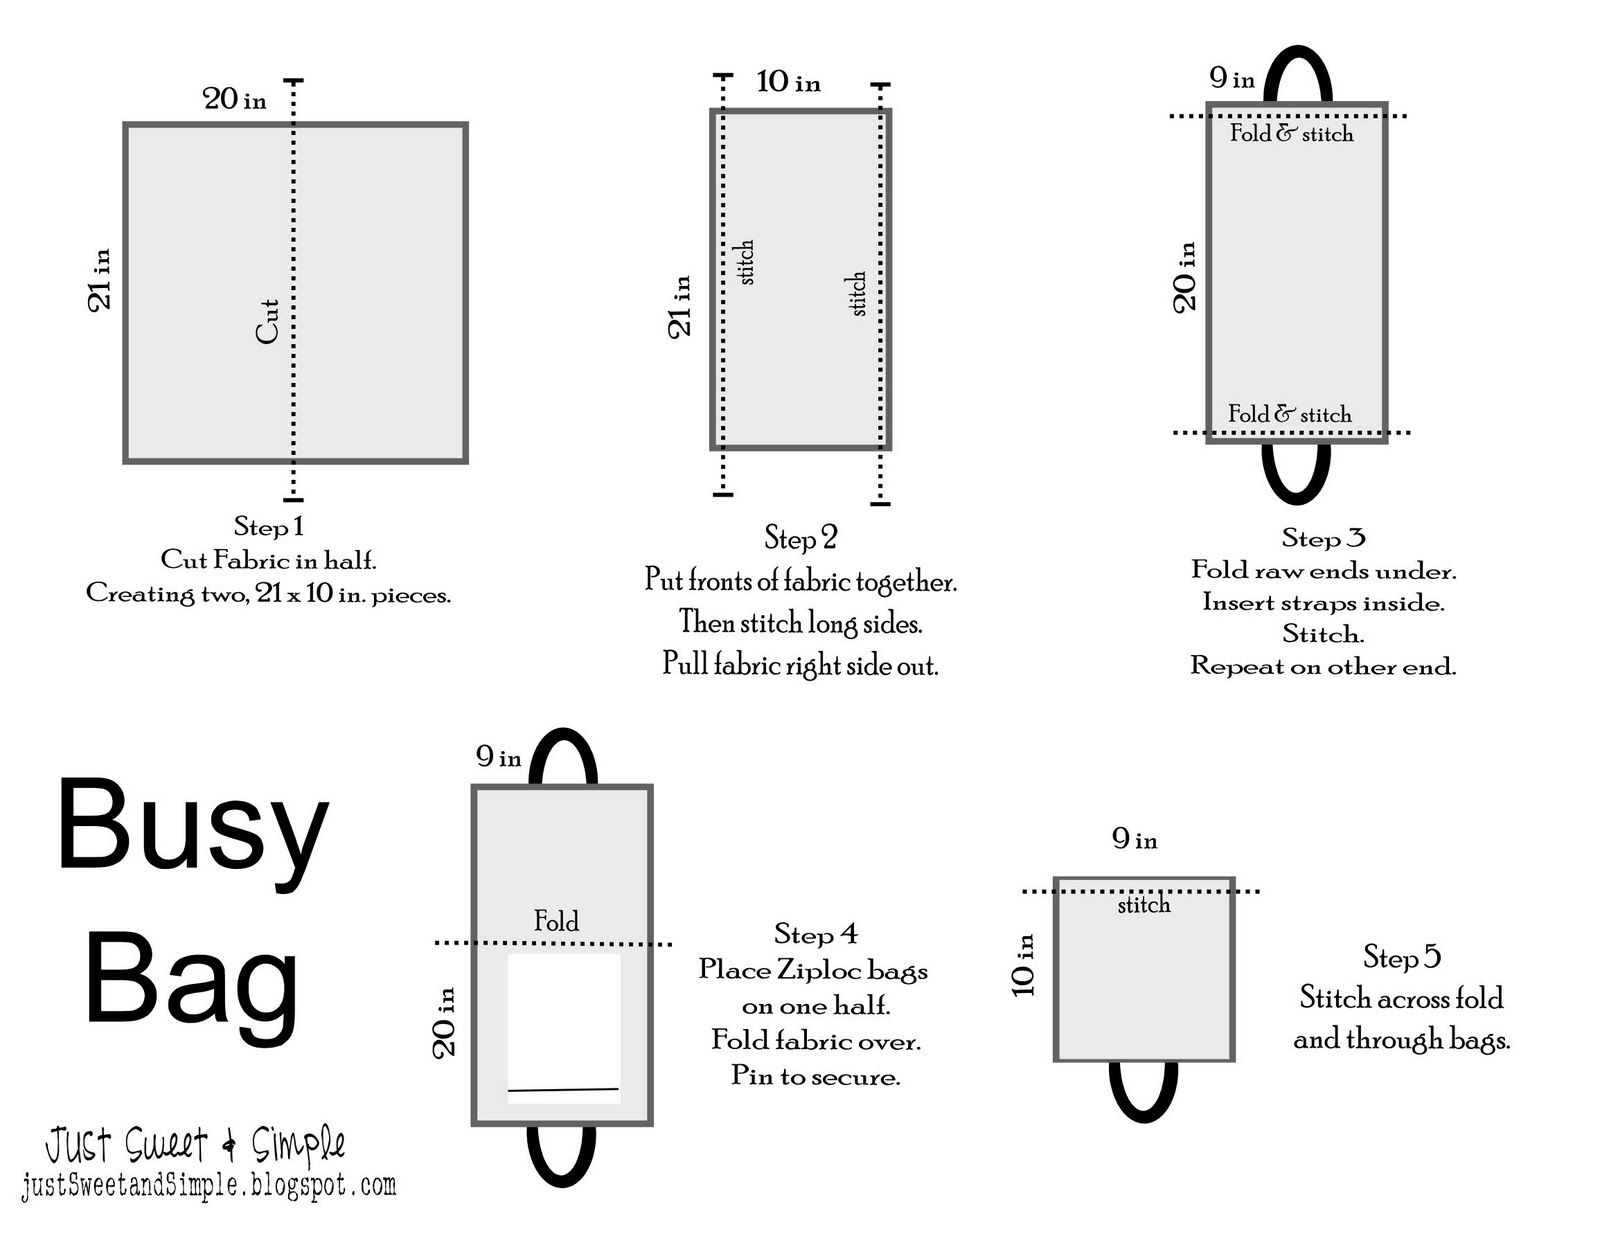 Busy+Book+Bag+Sewing+Instructions.JPG (1600×1236)